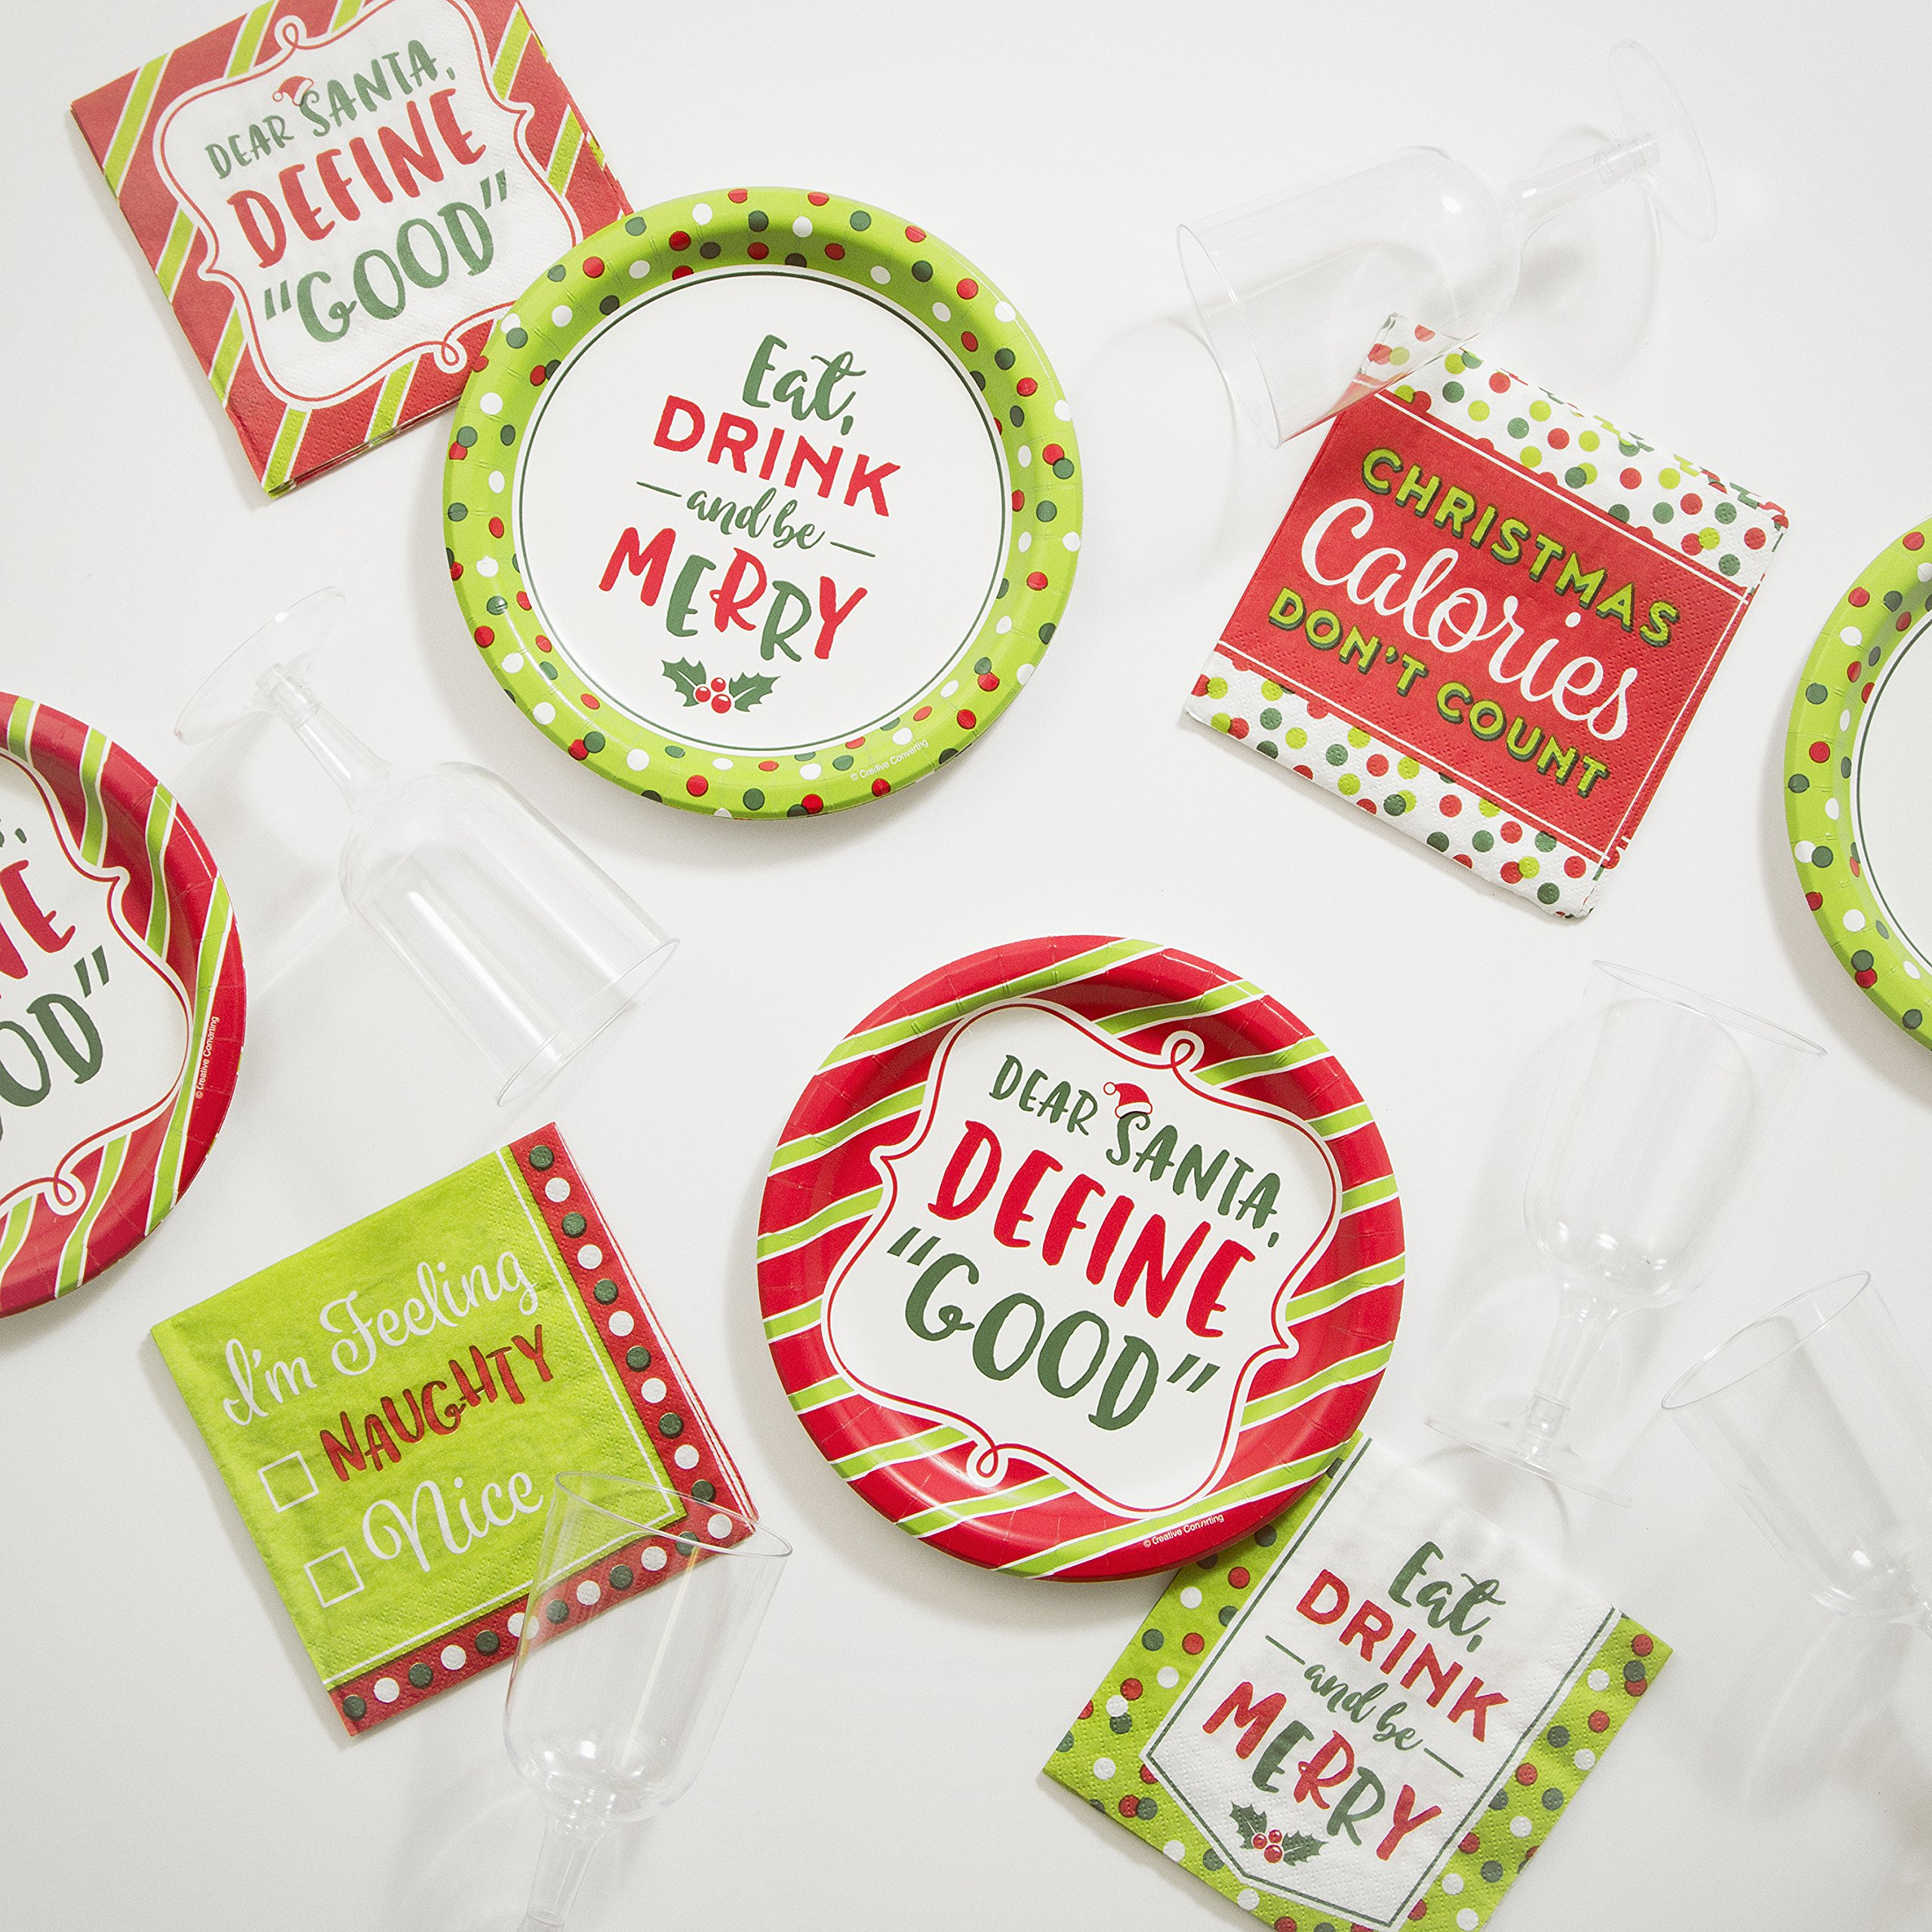 Christmas Cocktail Party Supplies Kit